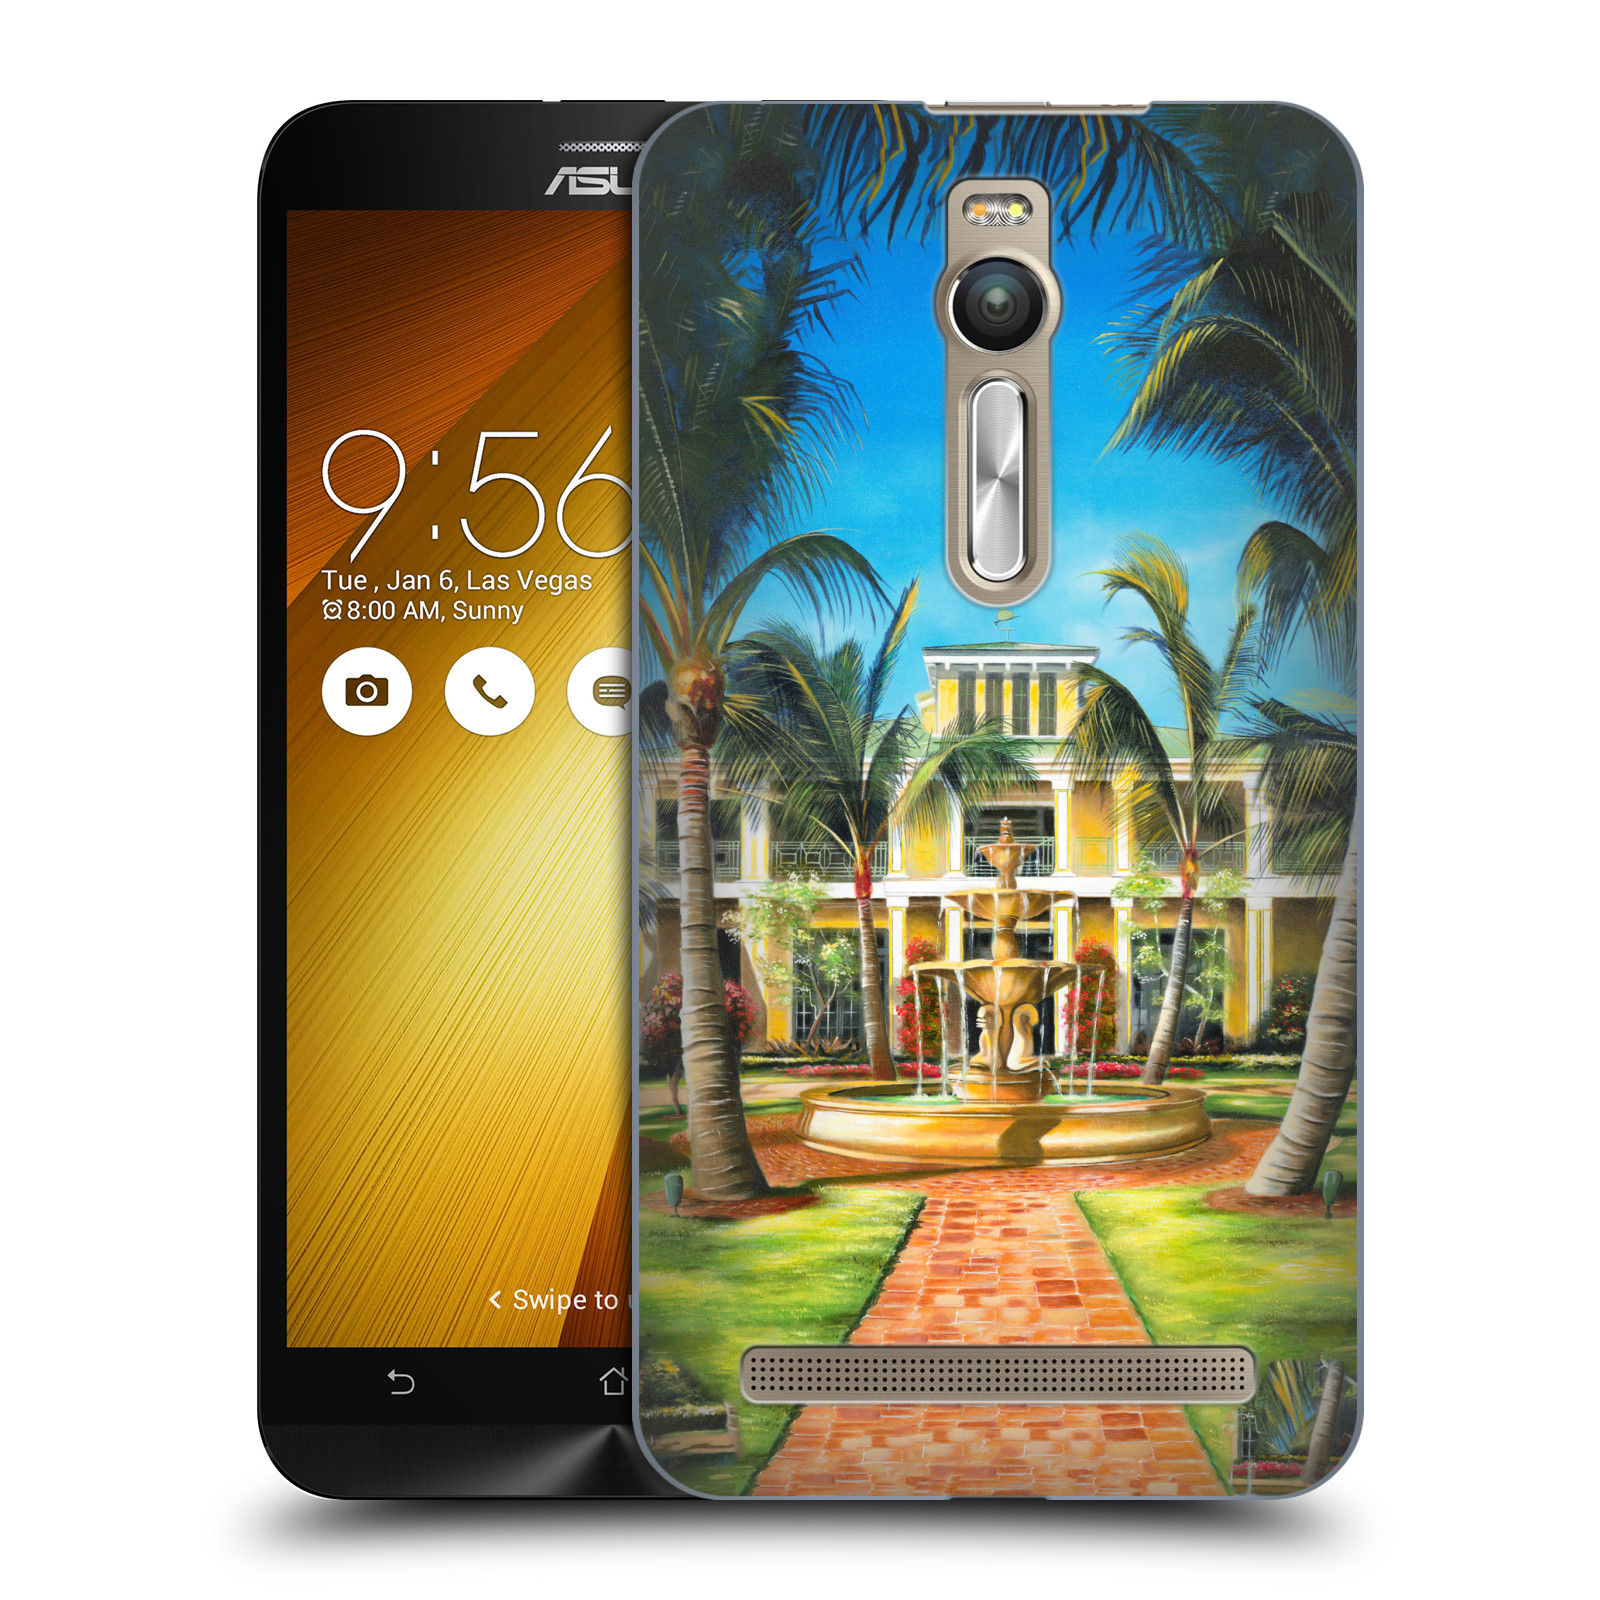 OFFICIAL-GENO-PEOPLES-ART-HOLIDAY-HARD-BACK-CASE-FOR-ASUS-ZENFONE-PHONES